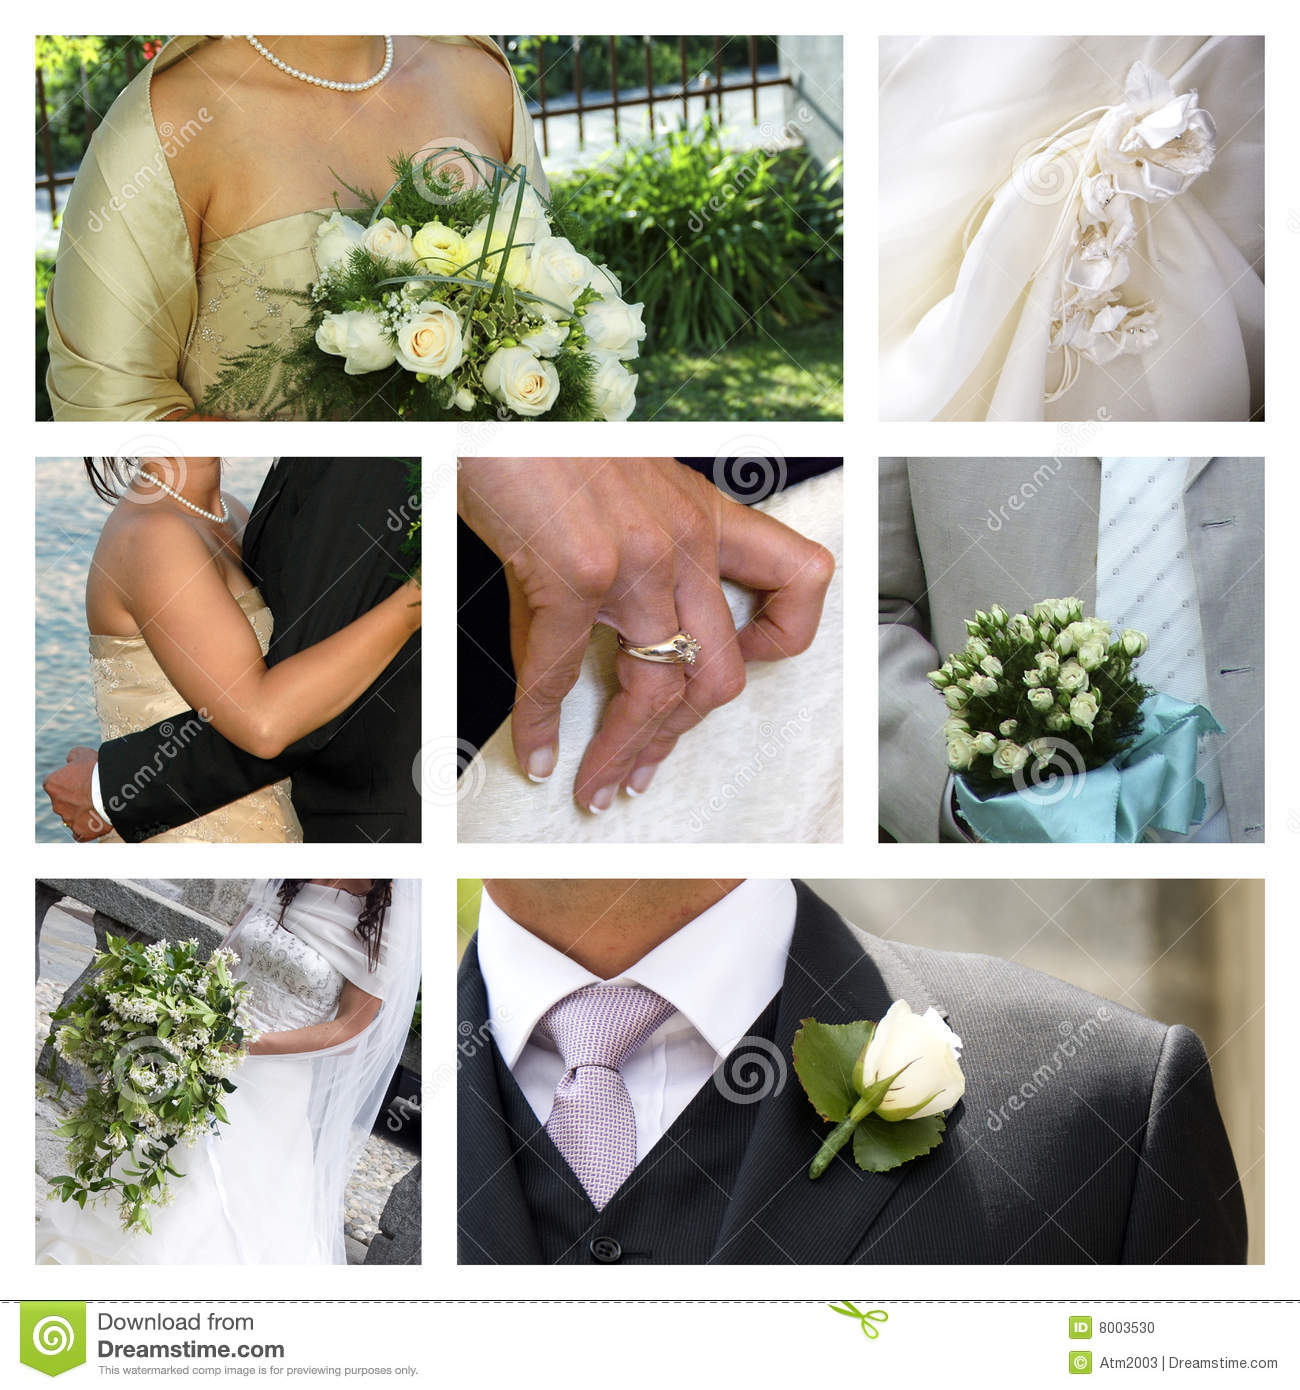 Wedding Collage Stock Photo  Image 8003530. Cause And Effect Diagram Template. Fillable Recipe Card Template. 8th Grade Graduation Gift Ideas For Son. Printable Wedding Guest List Template. Tear Off Flyer. Good Customer Service Resume Sample. Talent Show Program Template. Transition Management Plan Template